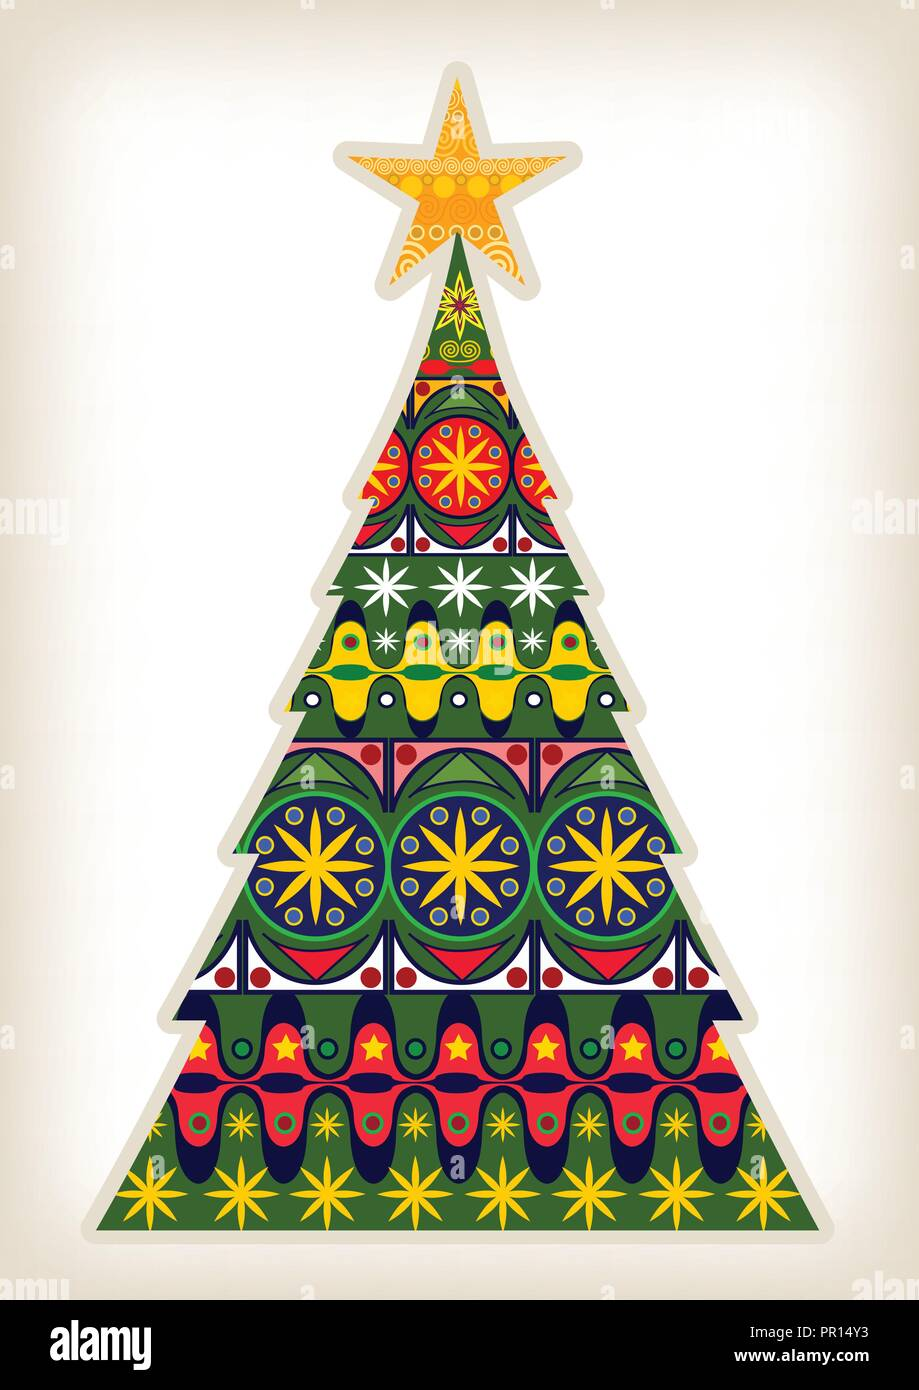 Christmas Tree Design - Stock Vector